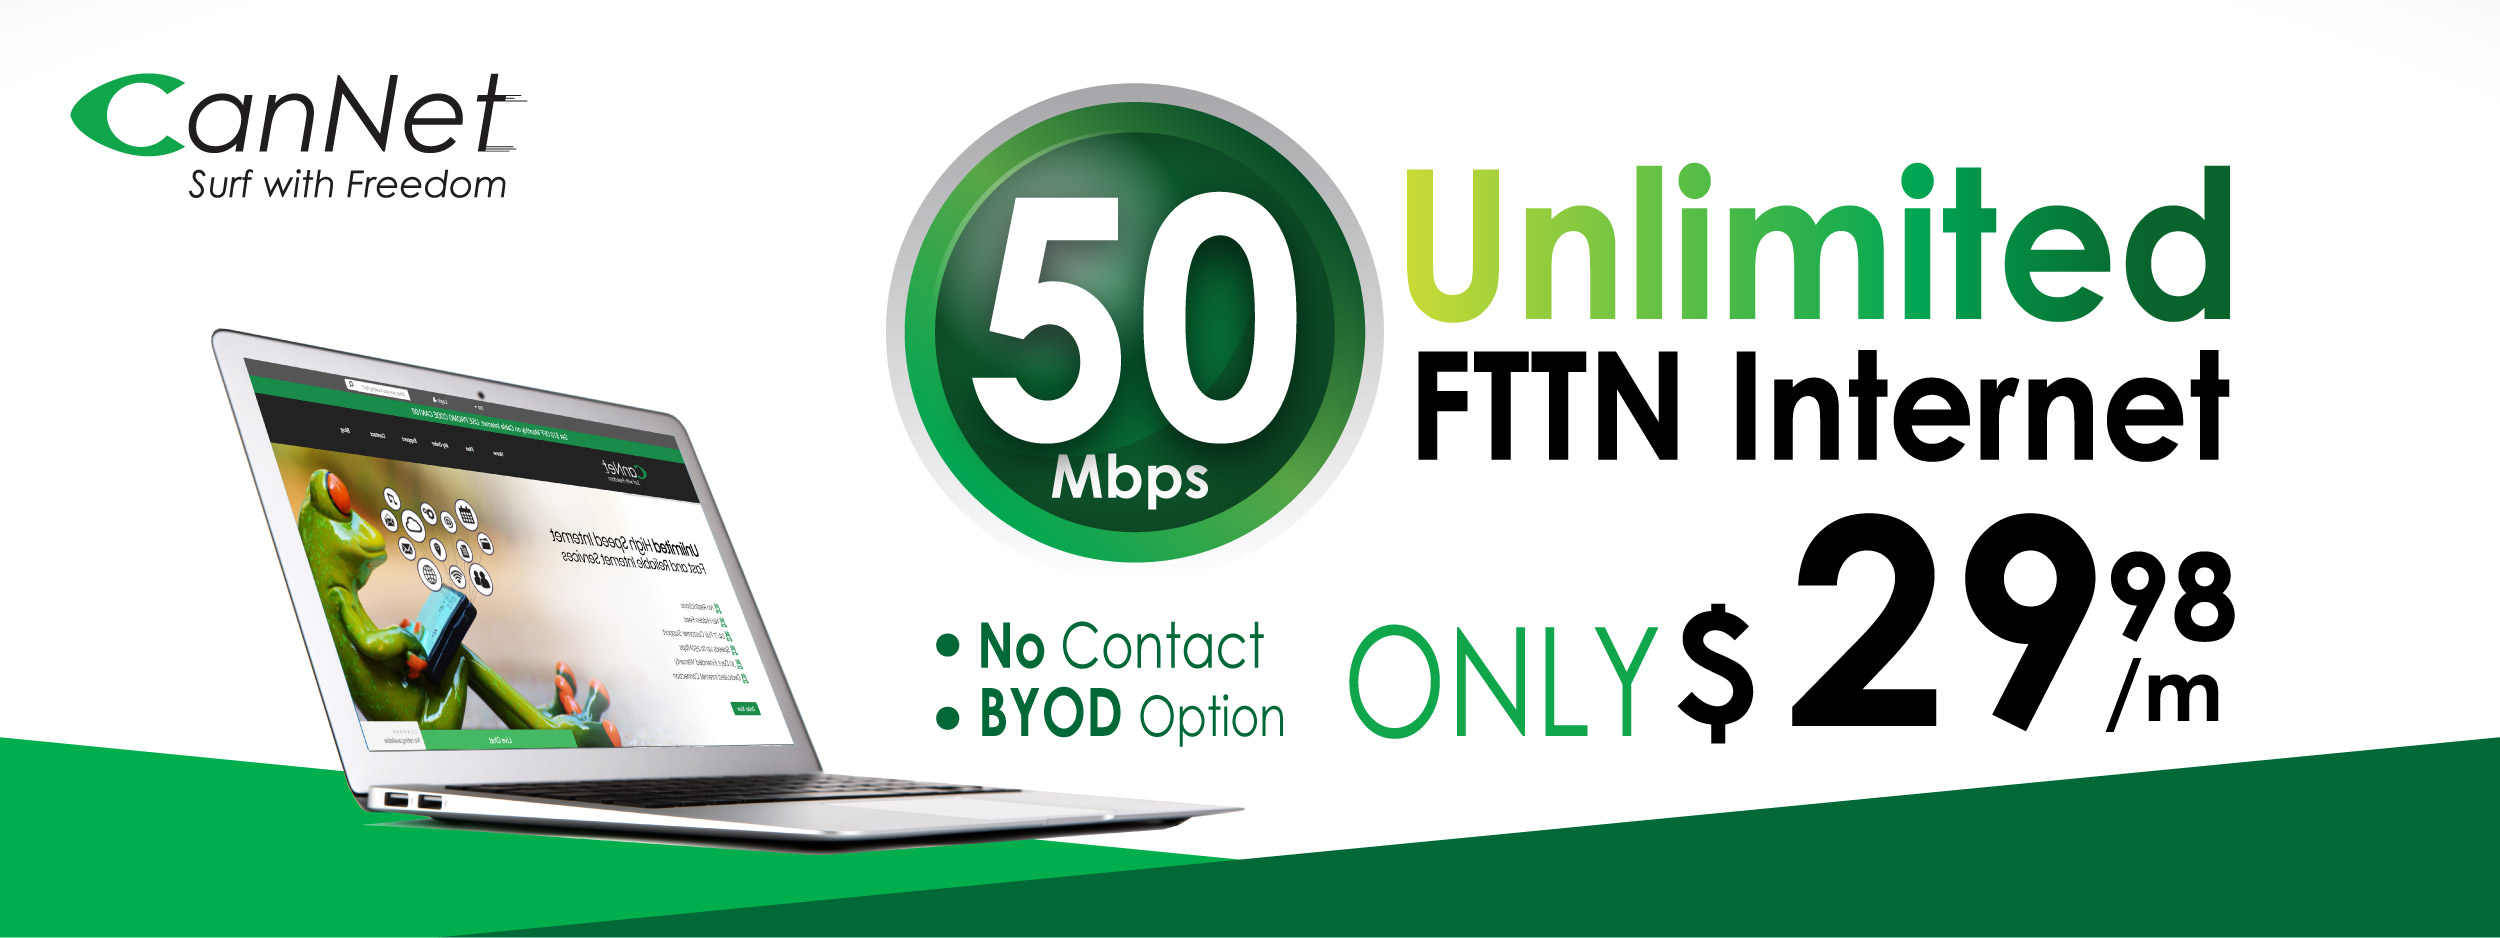 50M FTTN unlimited internet only $29.98 monthly with our SmartRG SR161 AC Router rental for $5/m(PROMOTION HAS ENDED)